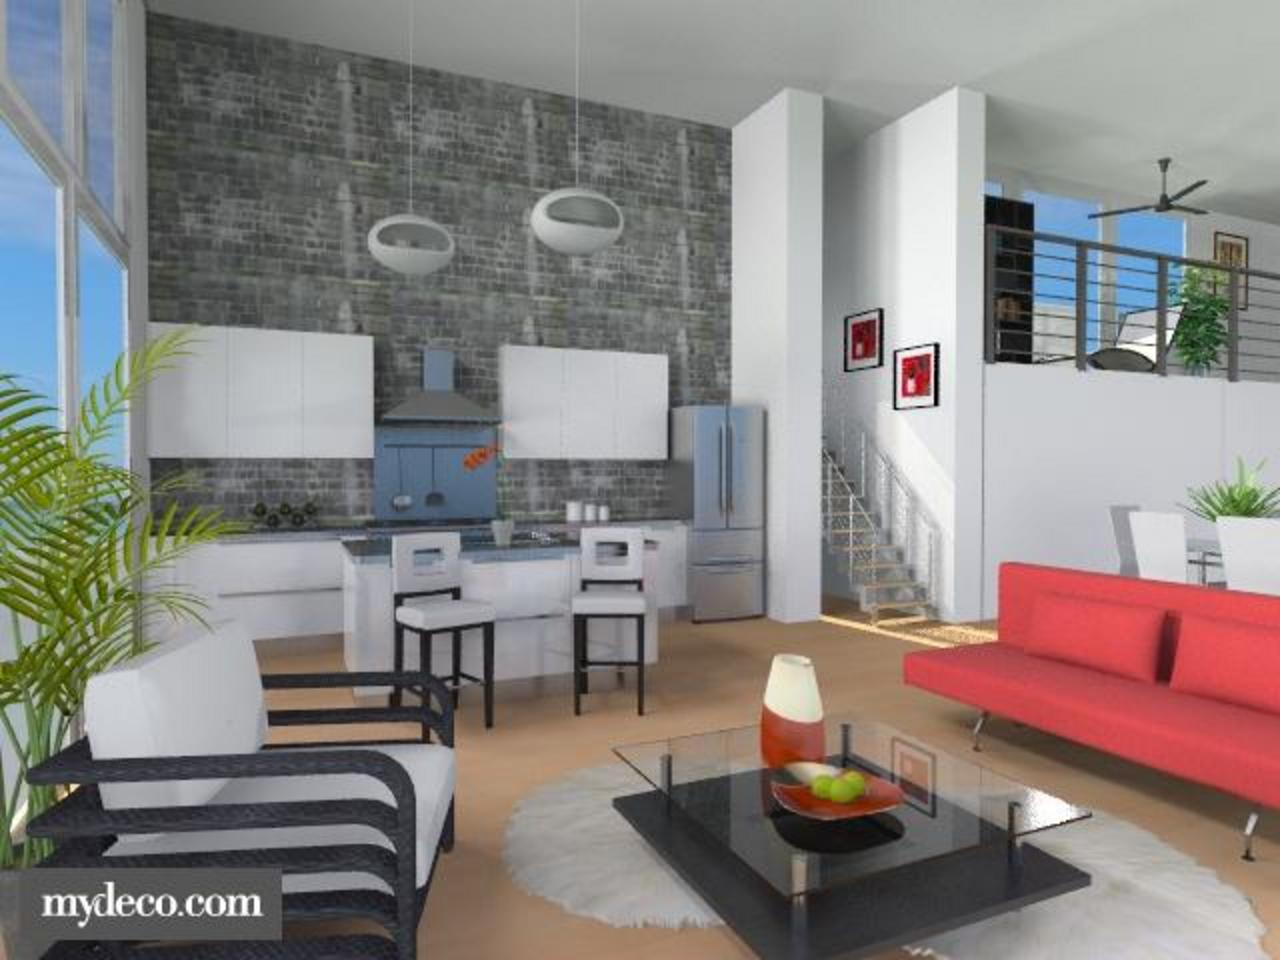 Design Loft Apartment Contest On Roomstyler